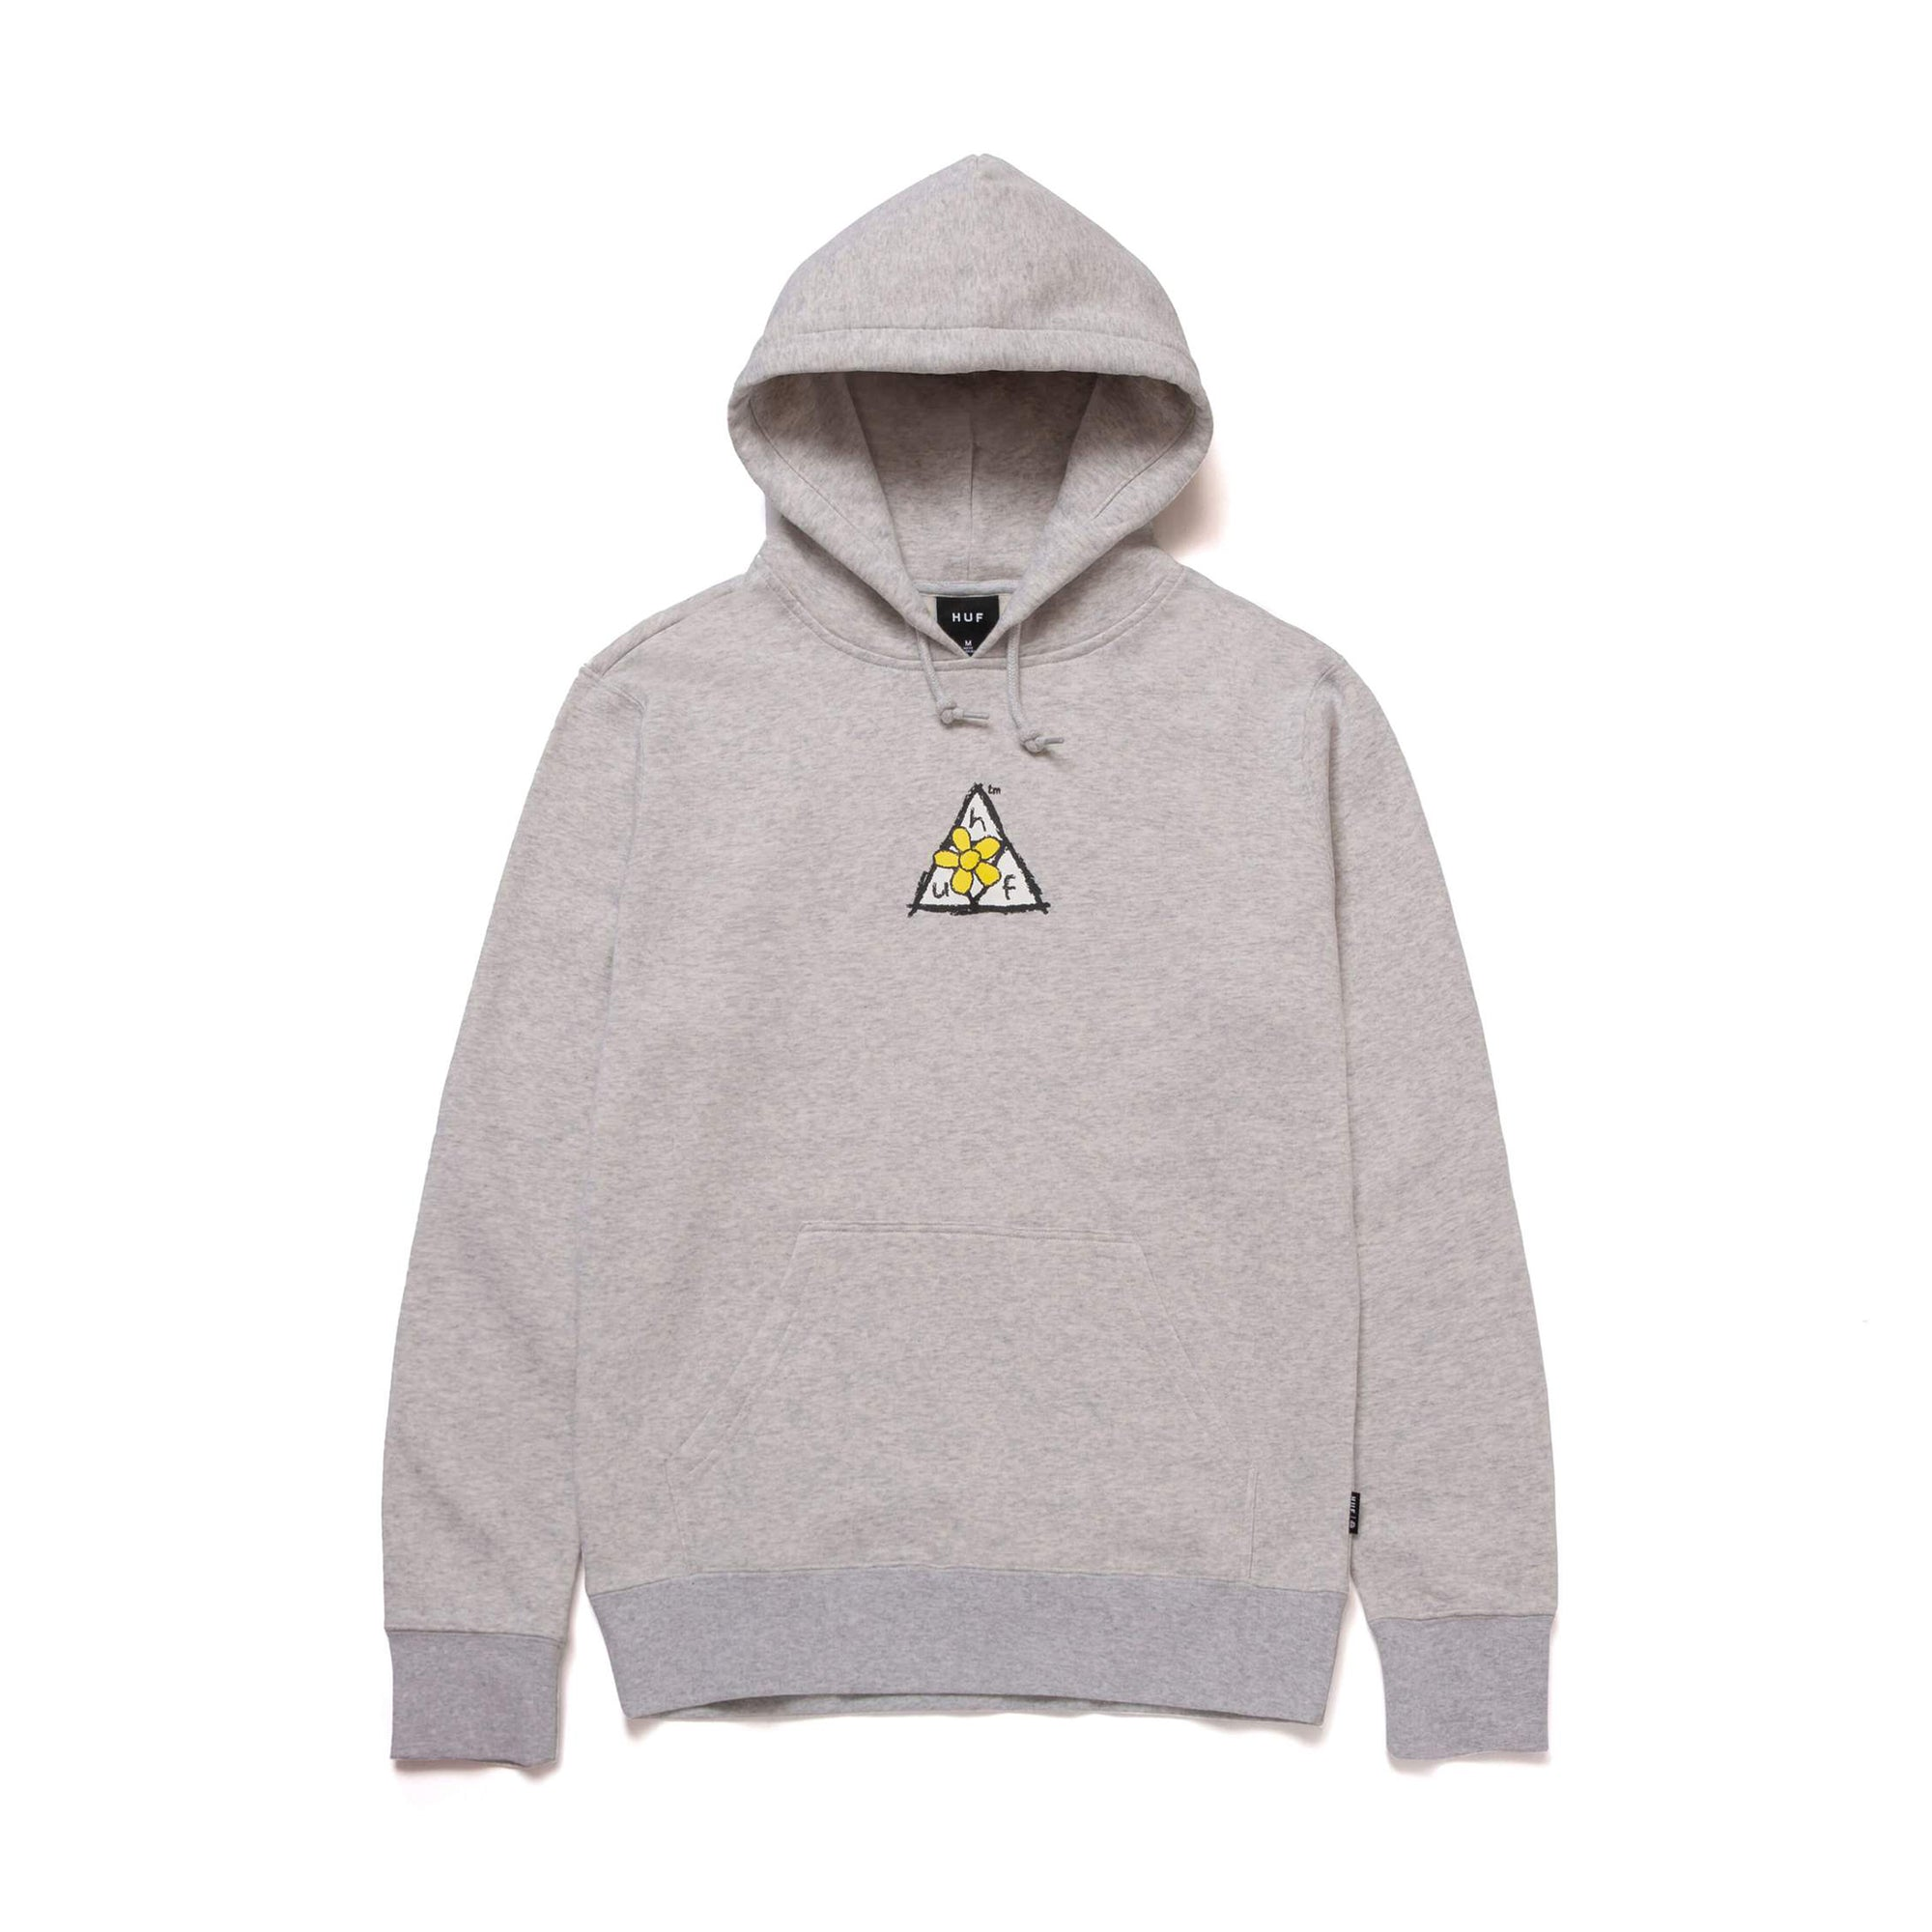 HUF Pushing Daisies TT  Hoodie: Athletic Heather - The Union Project